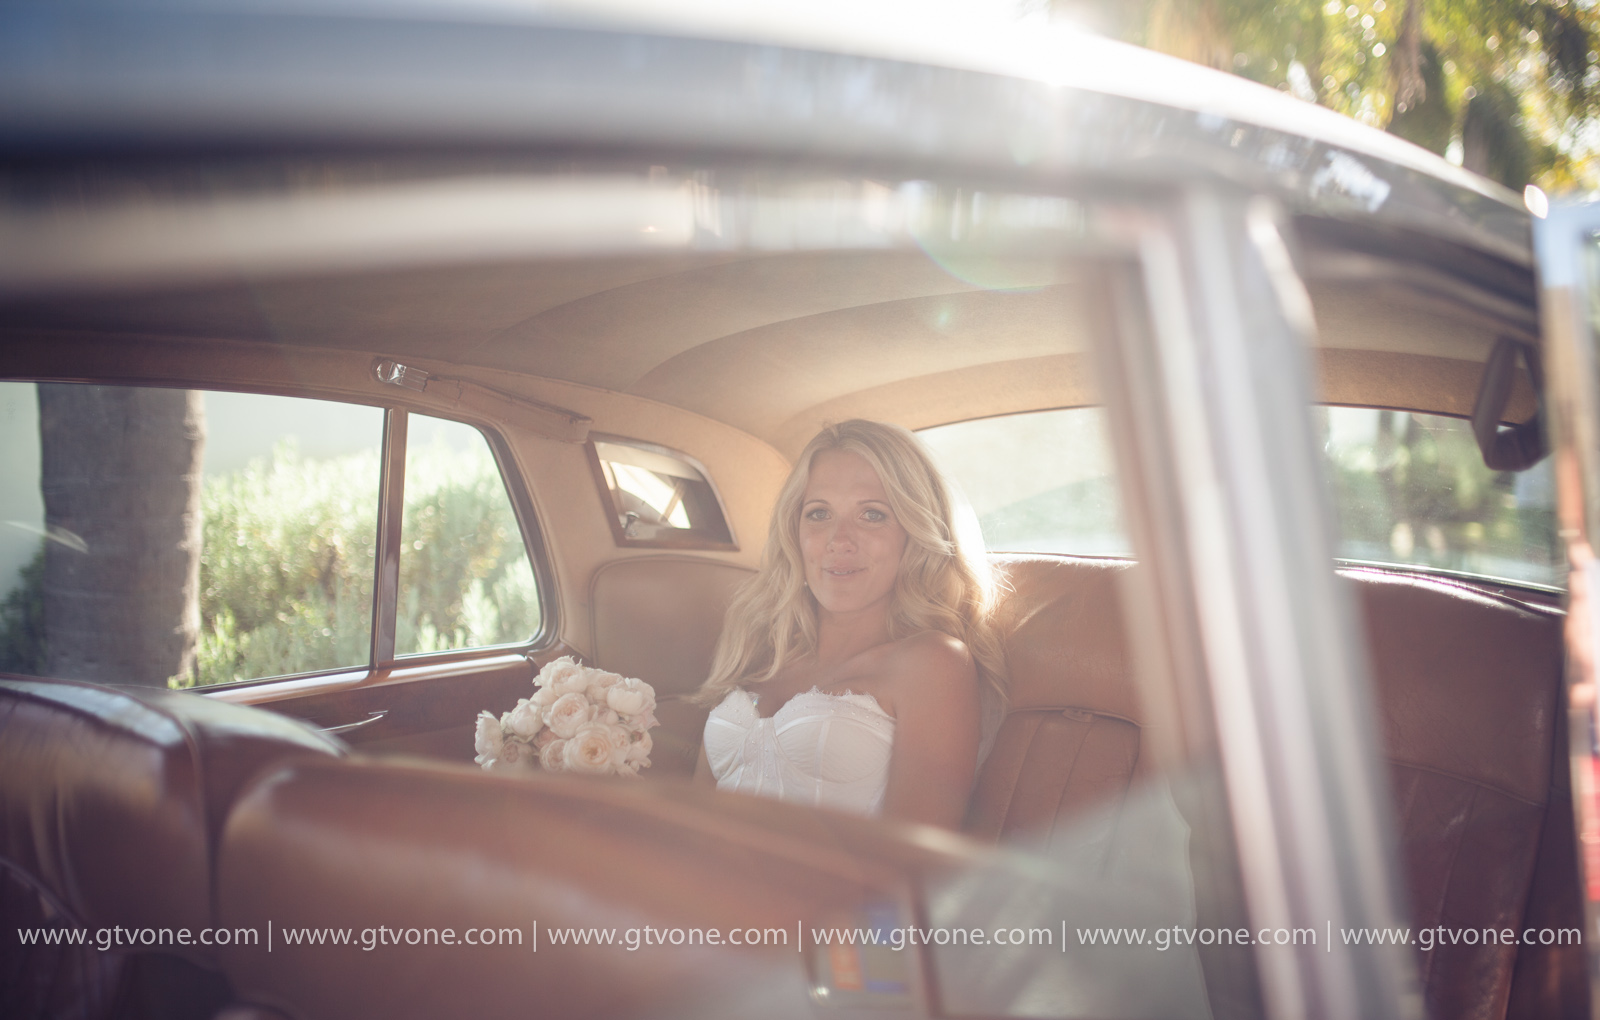 Simon_Pollock_Wedding_Photographer_Melbourne_Shaun_Kate_Sydney_Wedding_Car